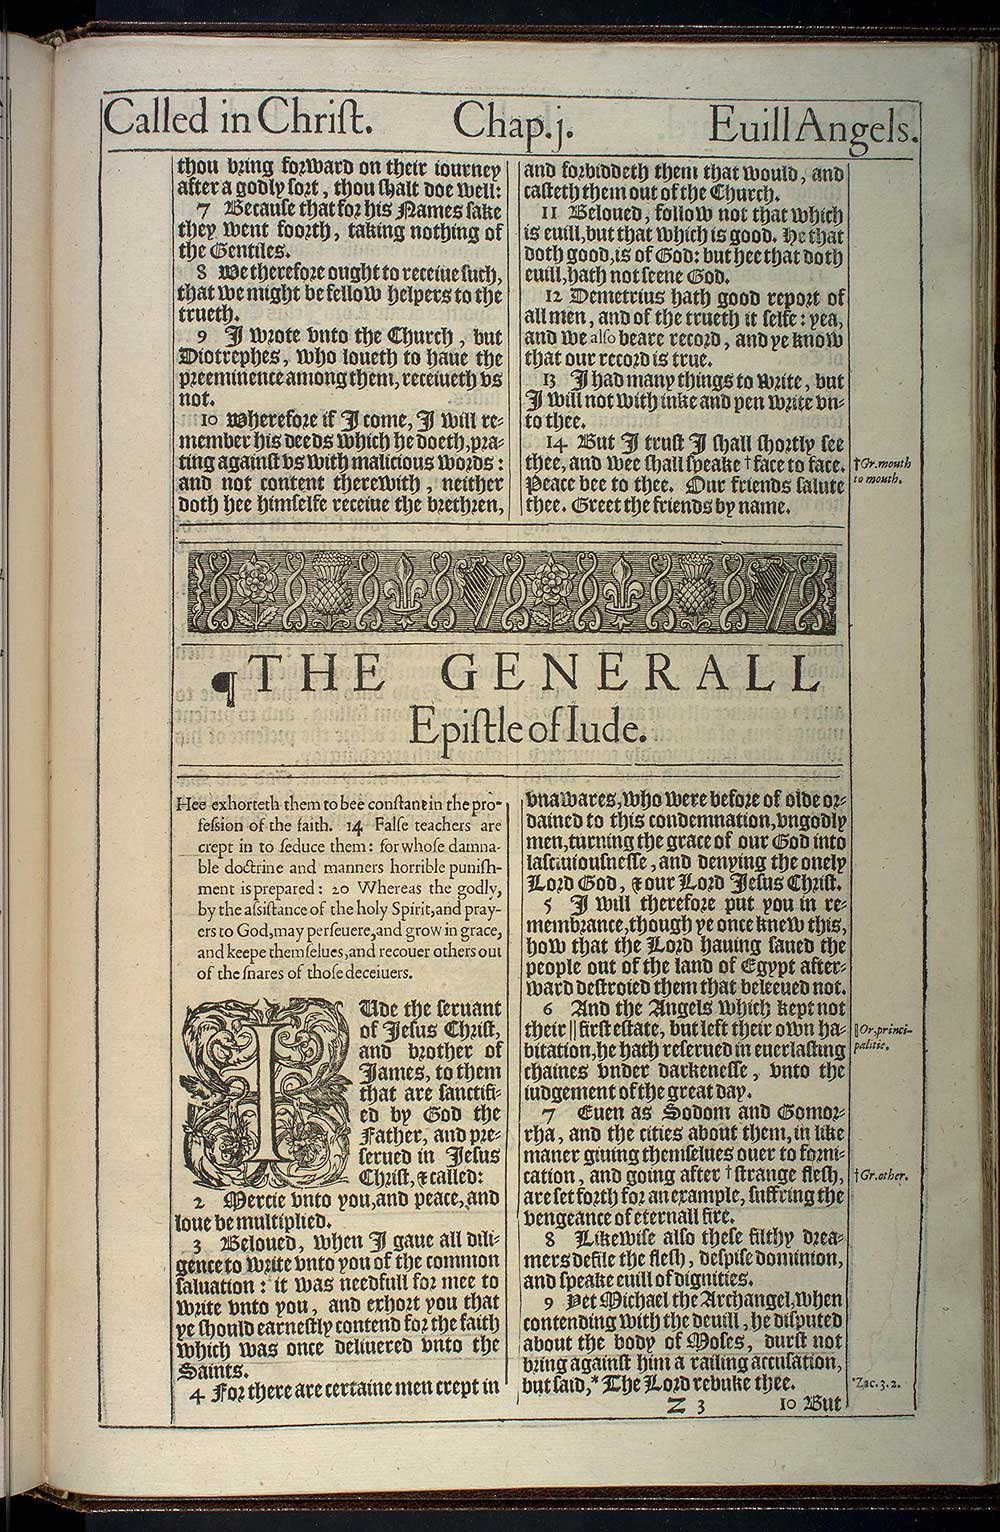 3 John Chapter 1 Original 1611 Bible Scan